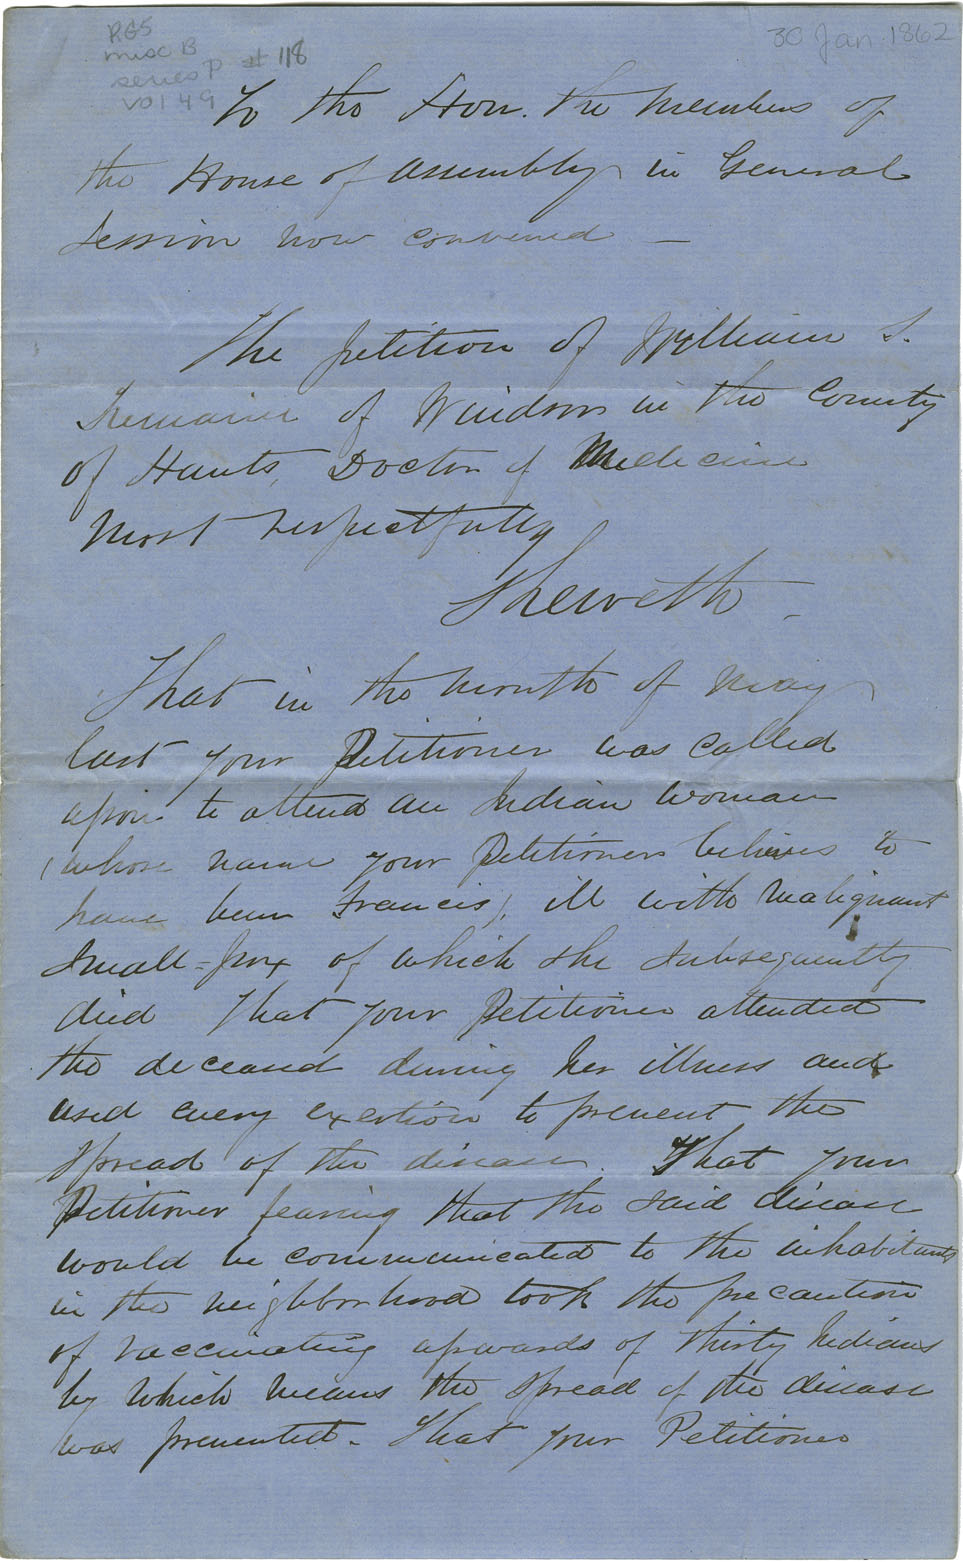 Petition of William S. Tremain of Windsor for payment of the expenses on a sick Mi'kmaq woman.